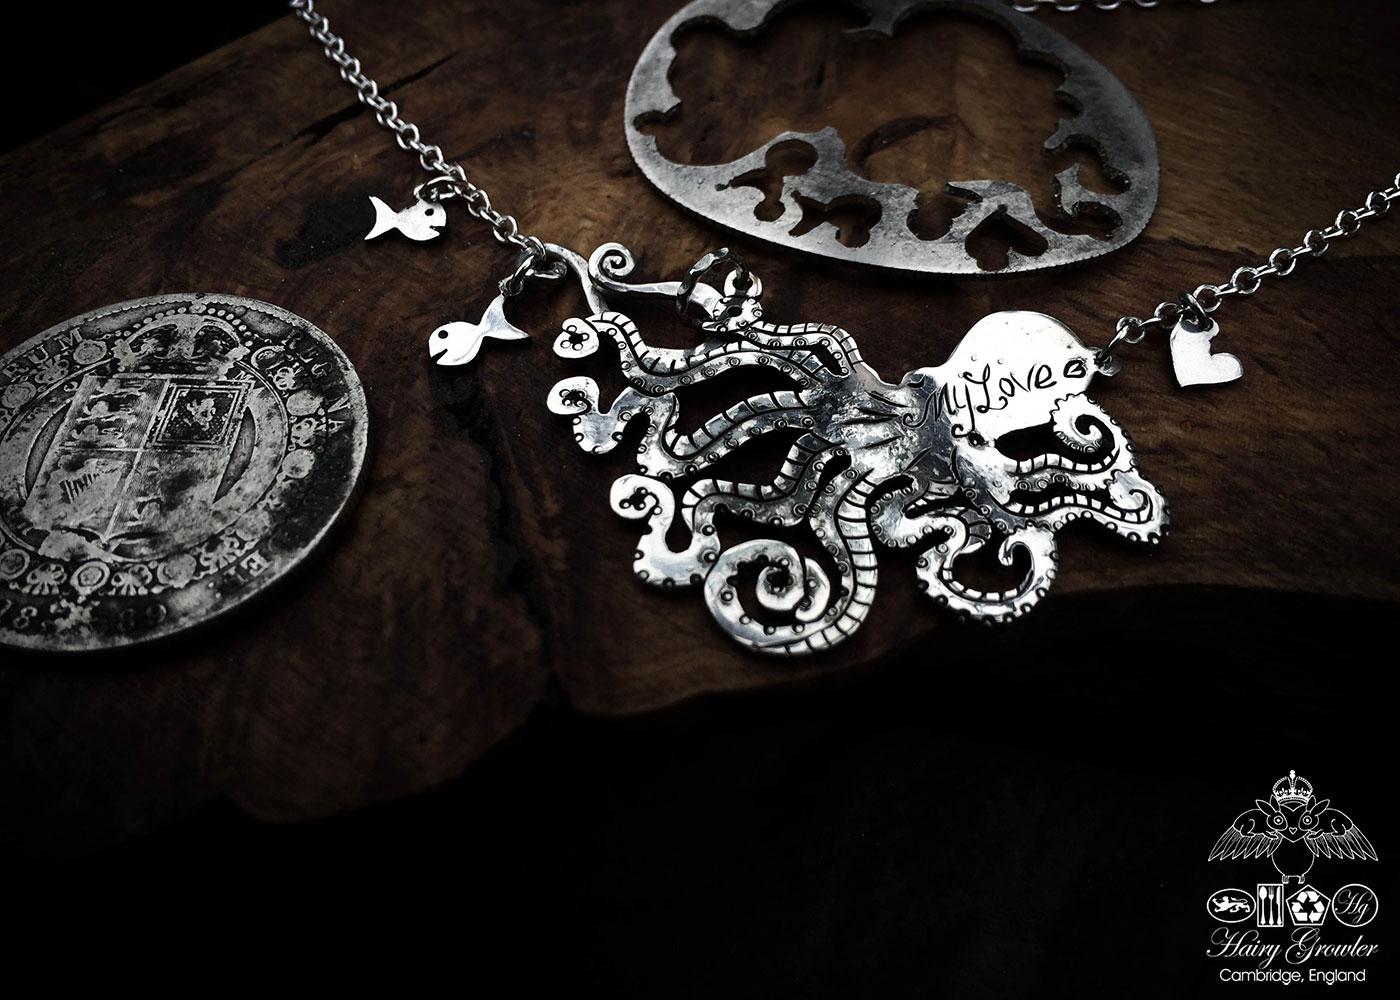 Handmade and upcycled, recycled silver coin octopus necklace made in landlocked Cambridge, UK